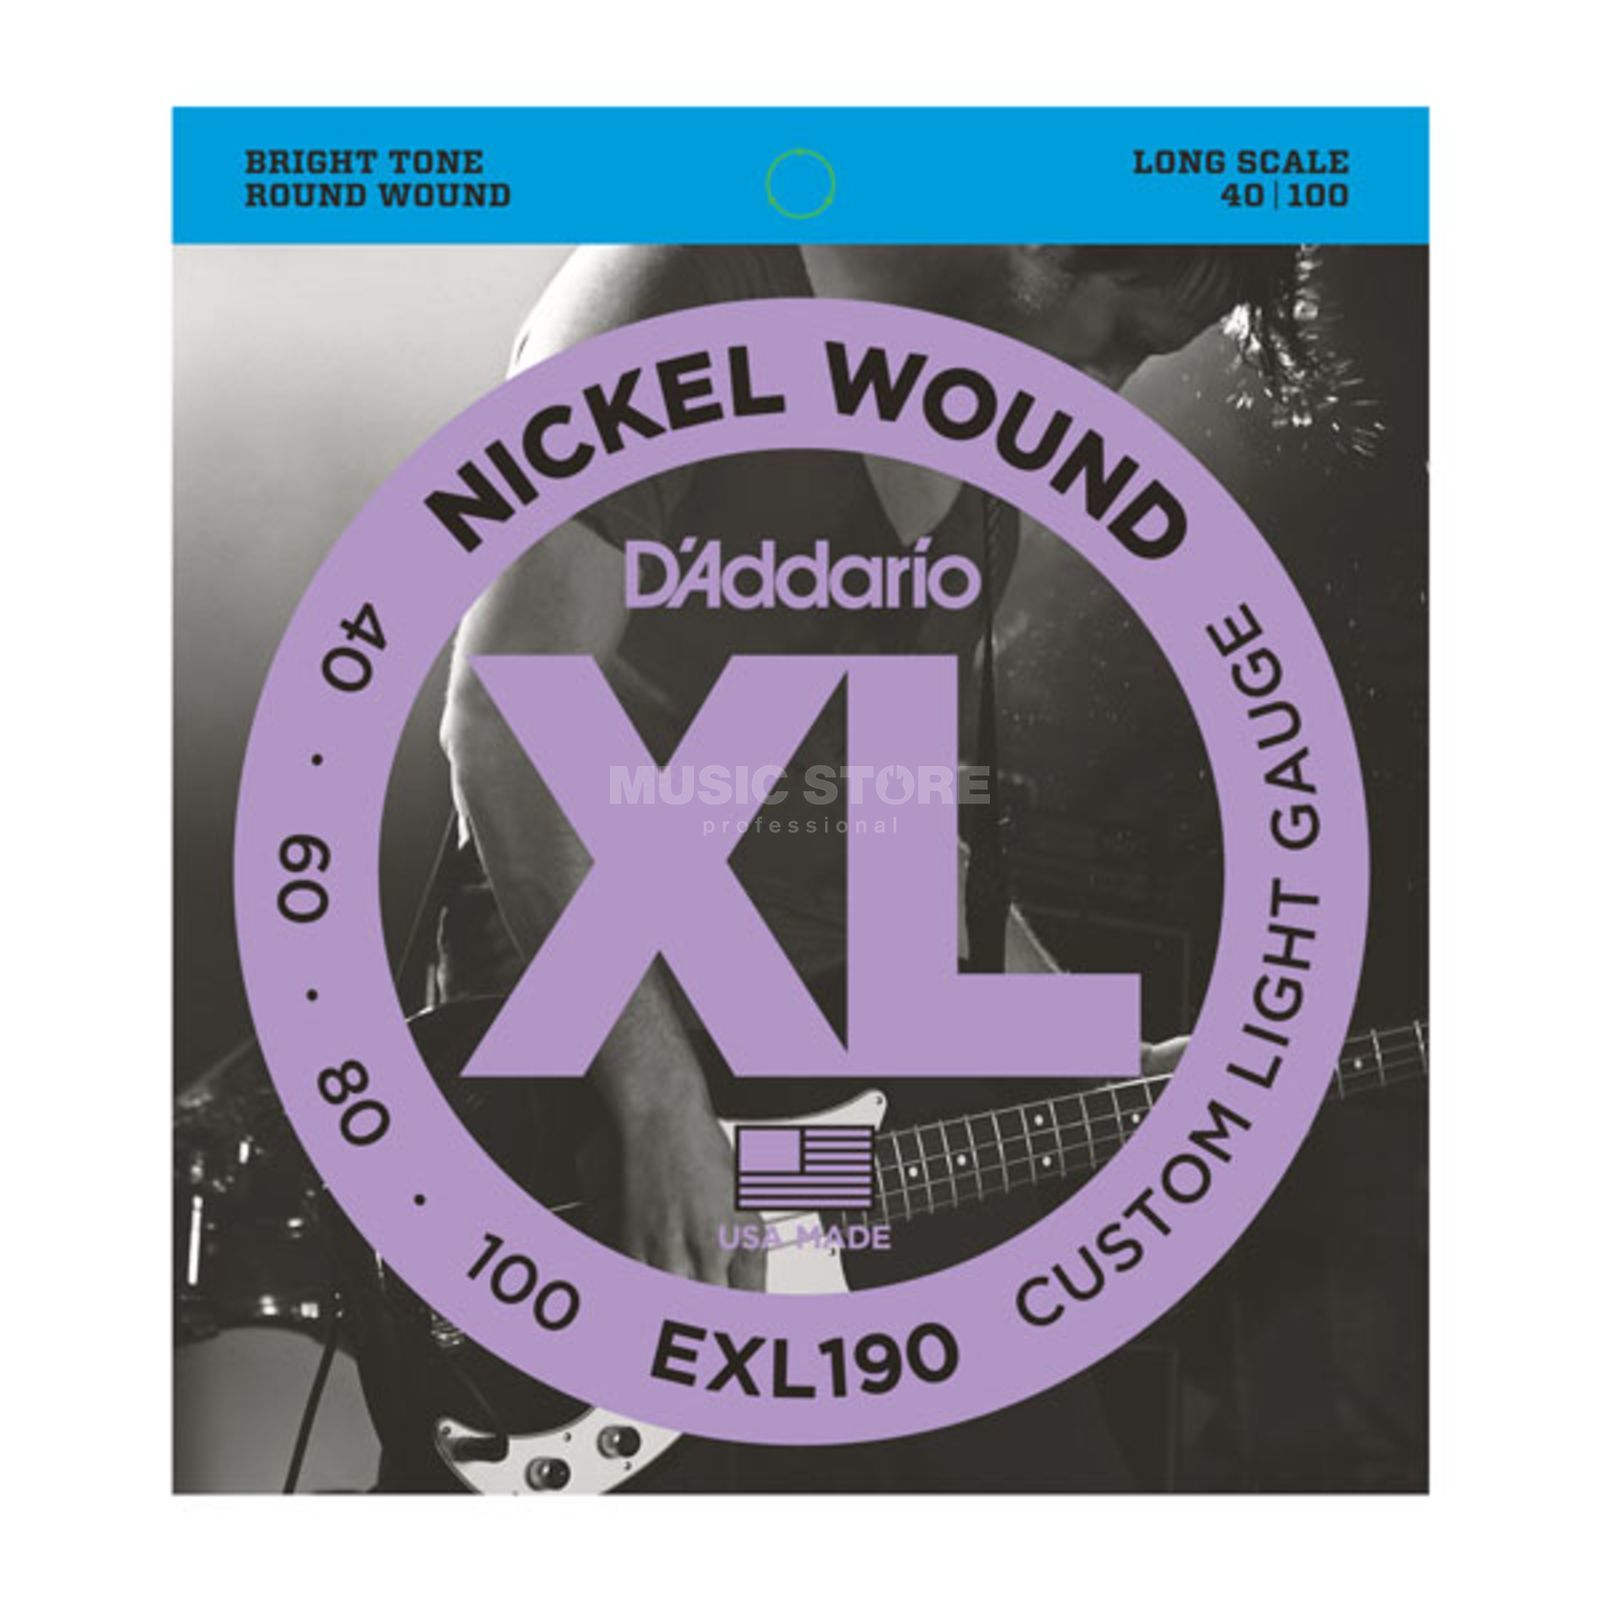 D'Addario Bass Strings XL Nickel 40-100 40-60-80-100, EXL190 Zdjęcie produktu